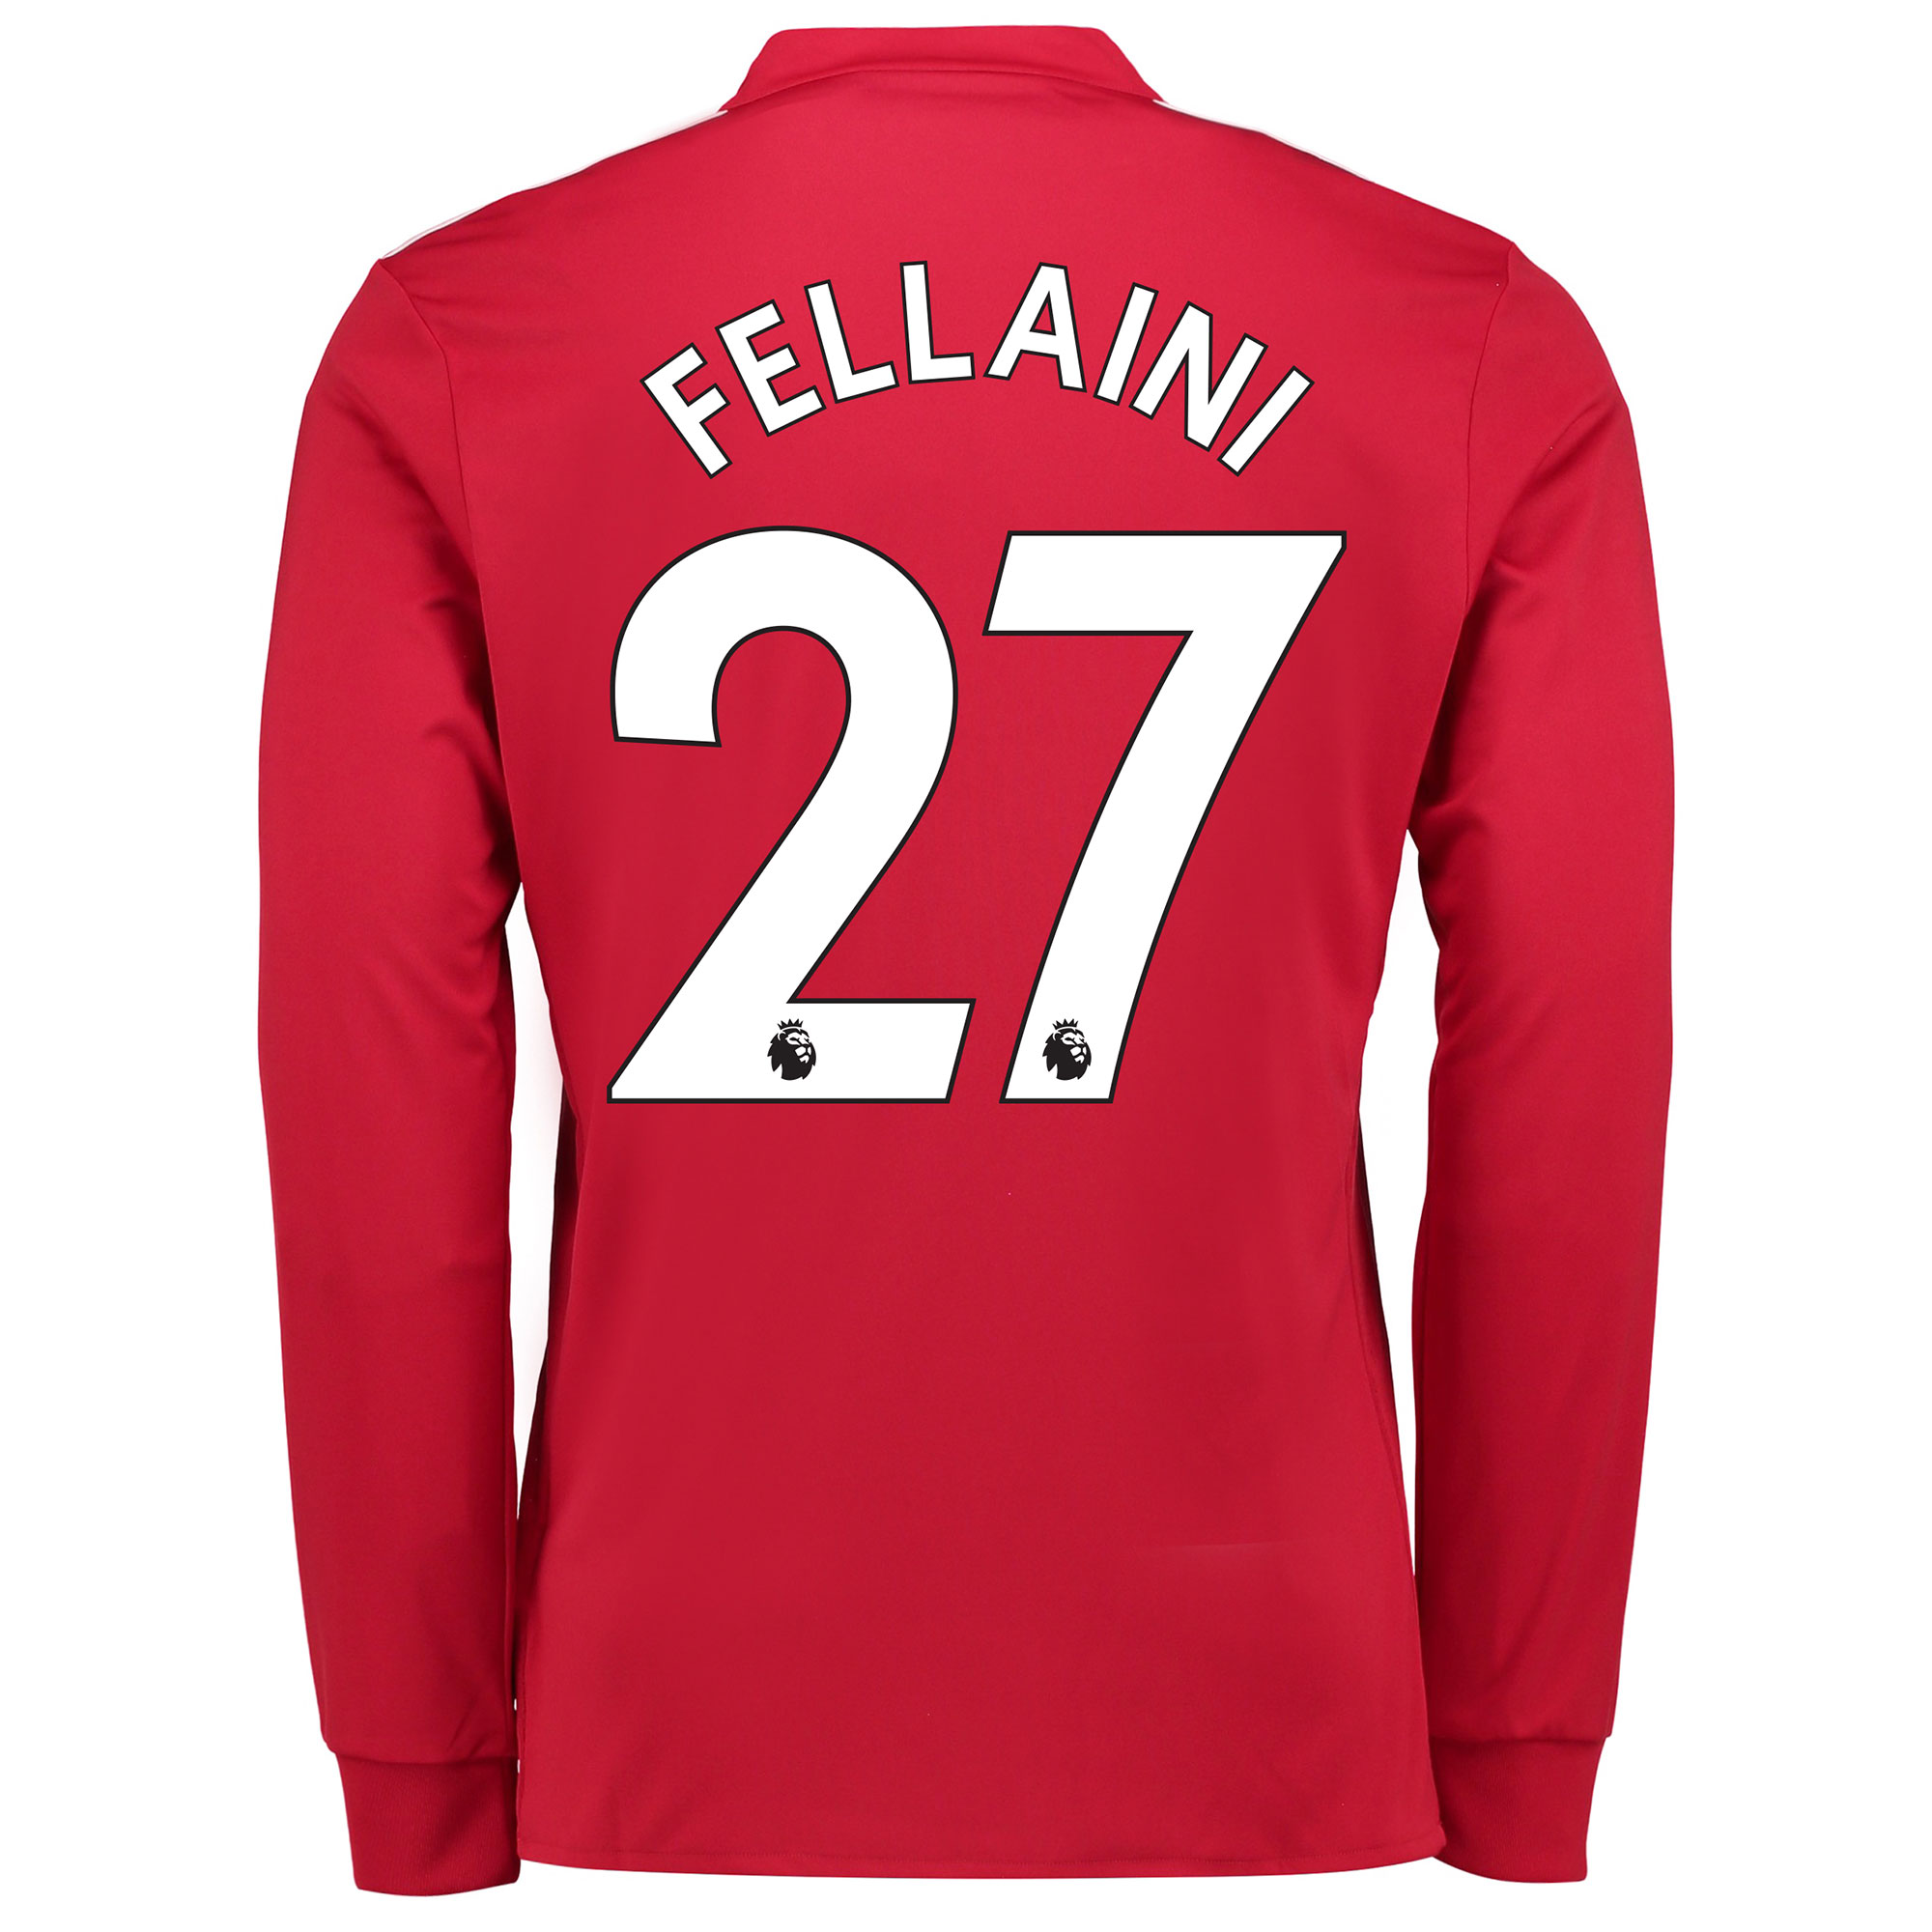 Manchester United Home Shirt 2017-18 - Long Sleeve with Fellaini 27 pr